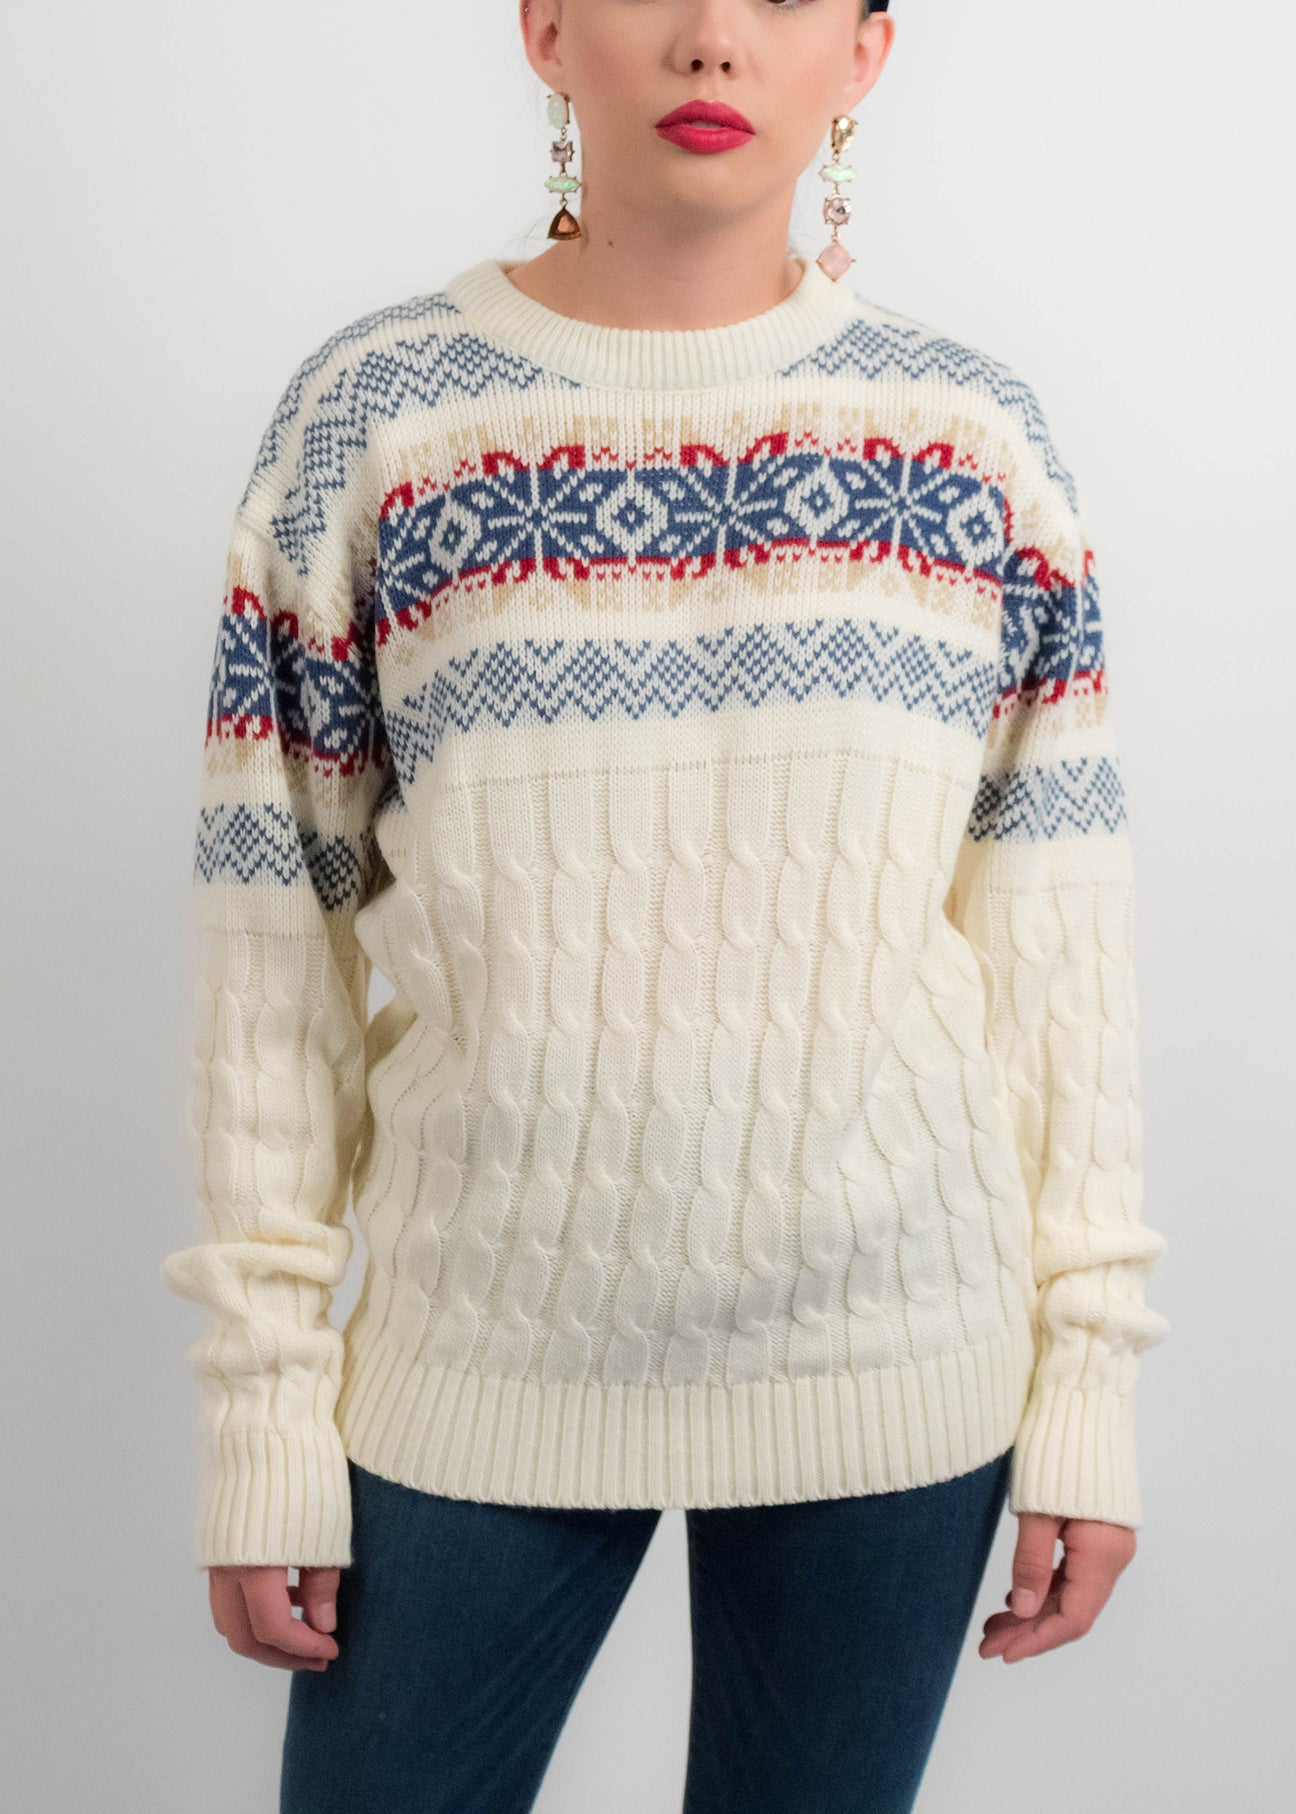 70s Cable-Knit Fair Isle Sweater